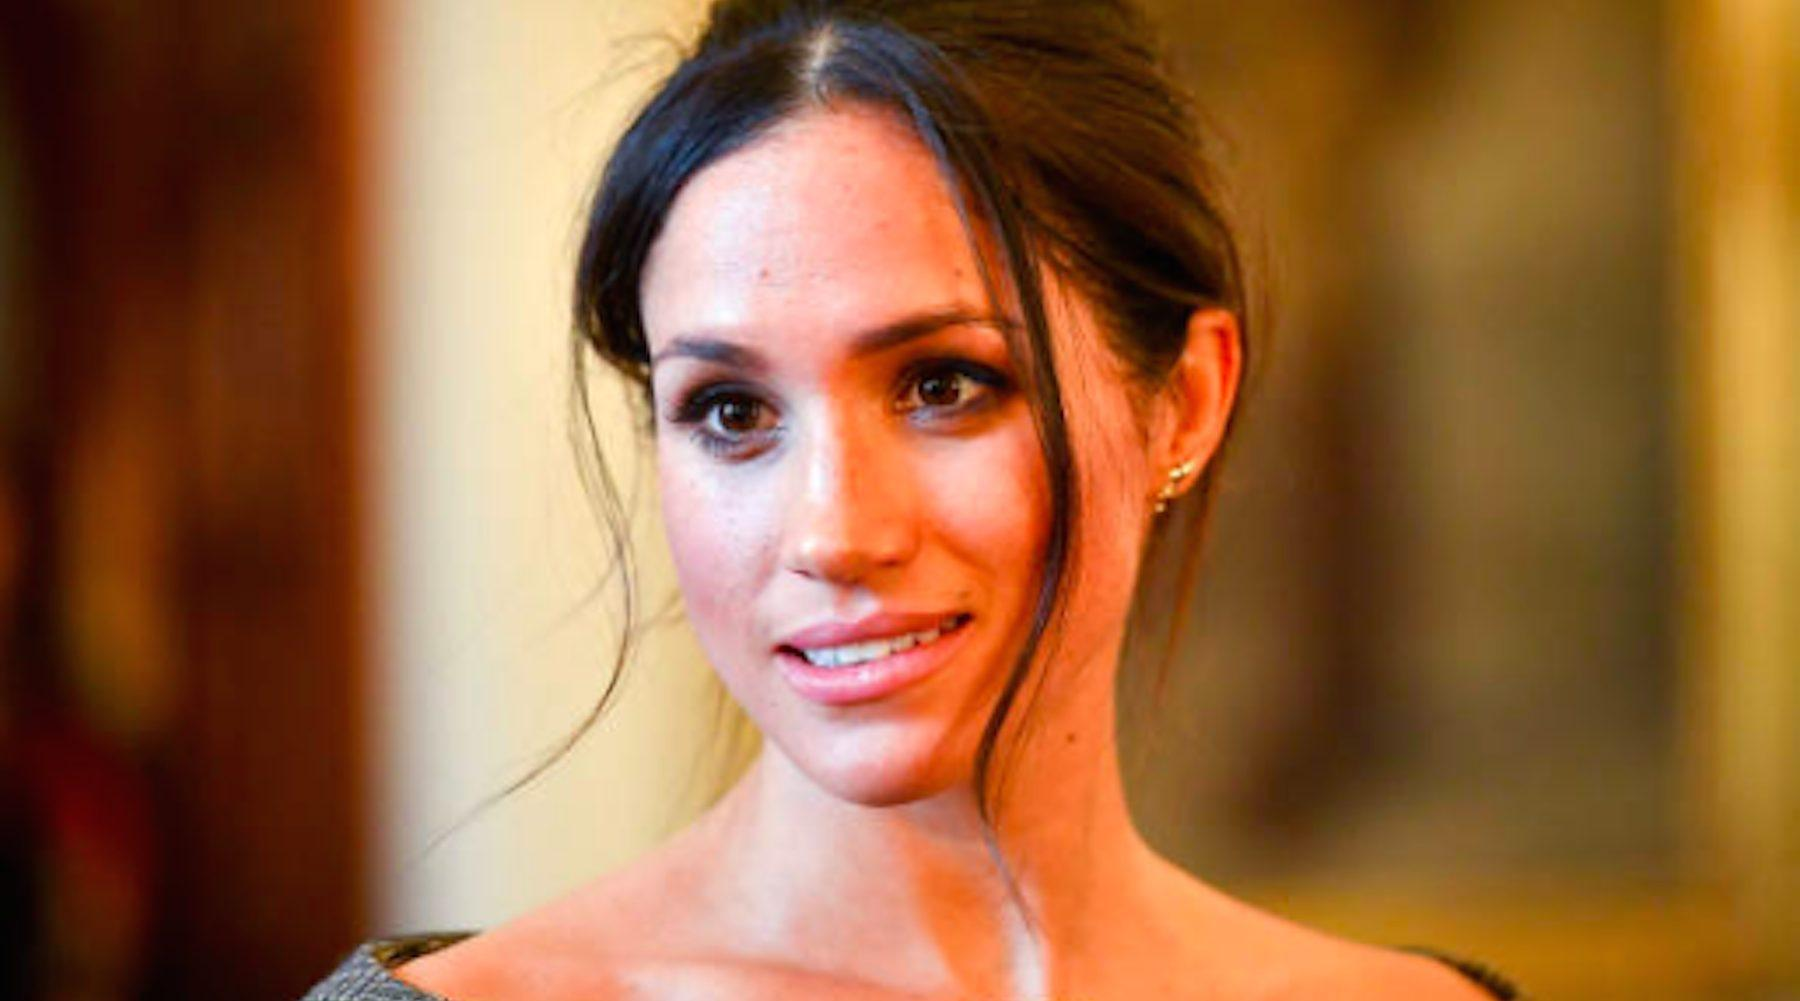 meghan_markle_sister_father-1531931956860-1531931958532.jpg